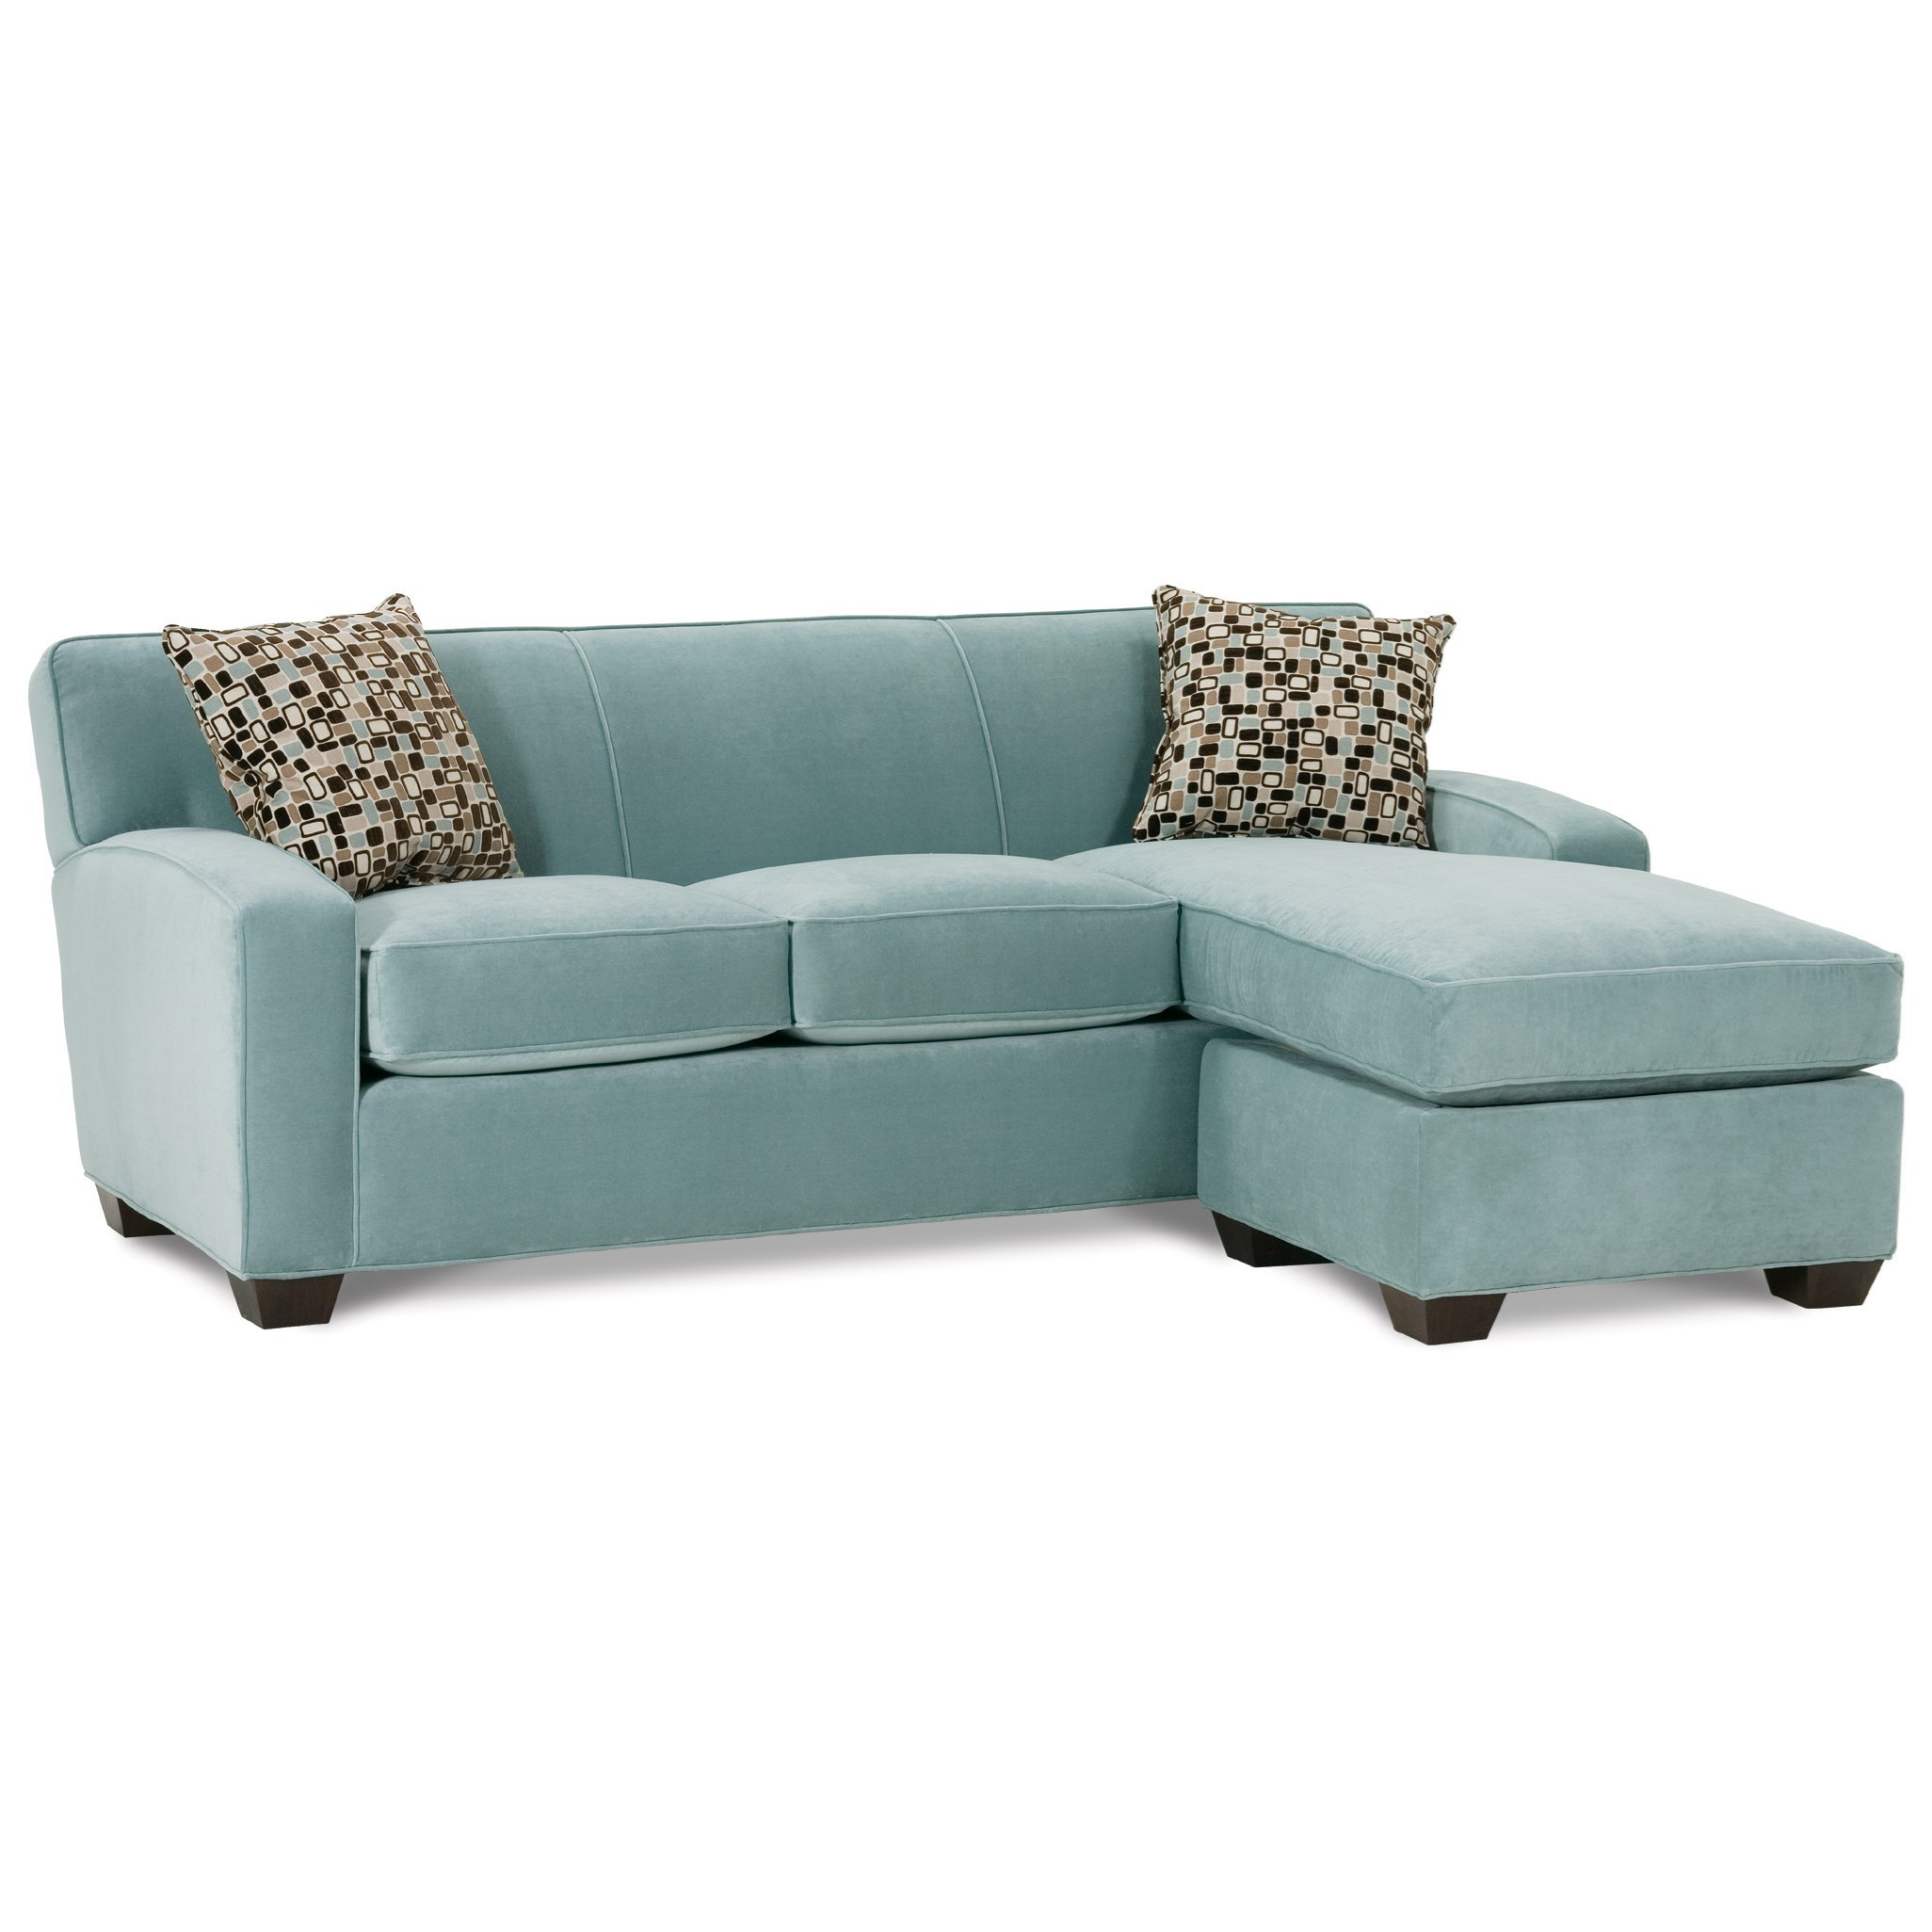 Horizon Stationary Sectional with Chaise by Rowe at Bullard Furniture